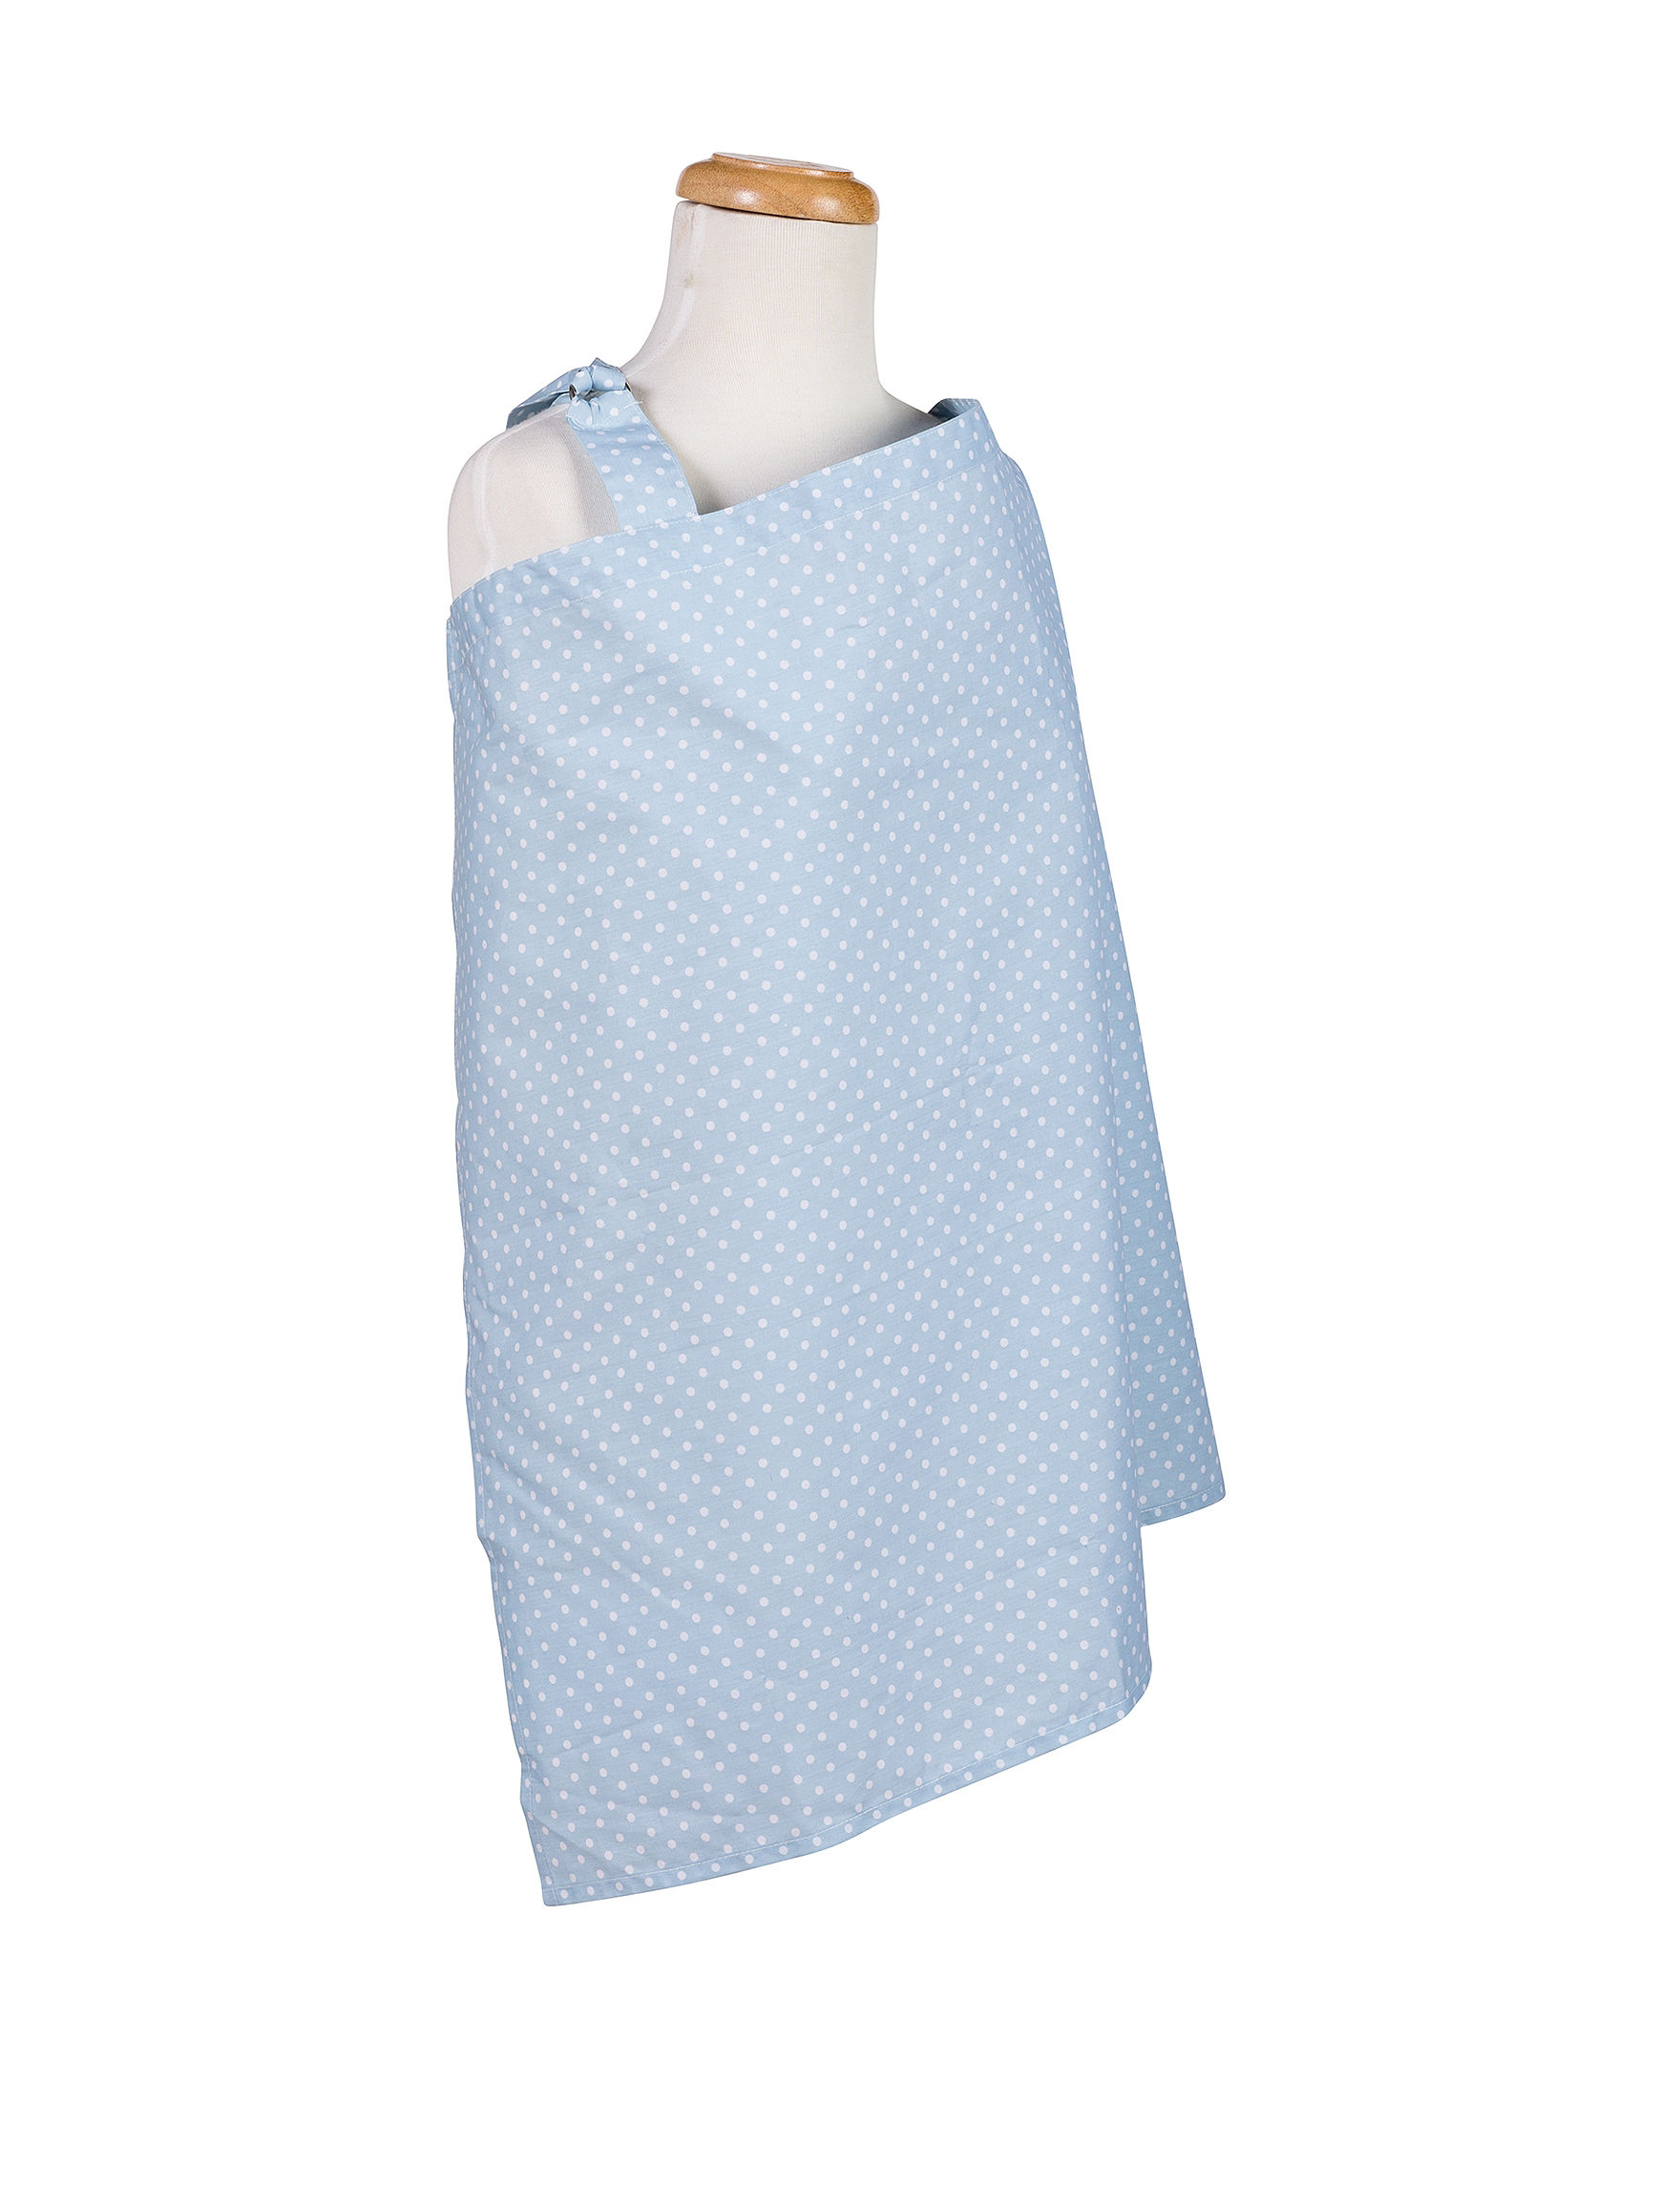 Trend Lab Blue / White Breastfeeding